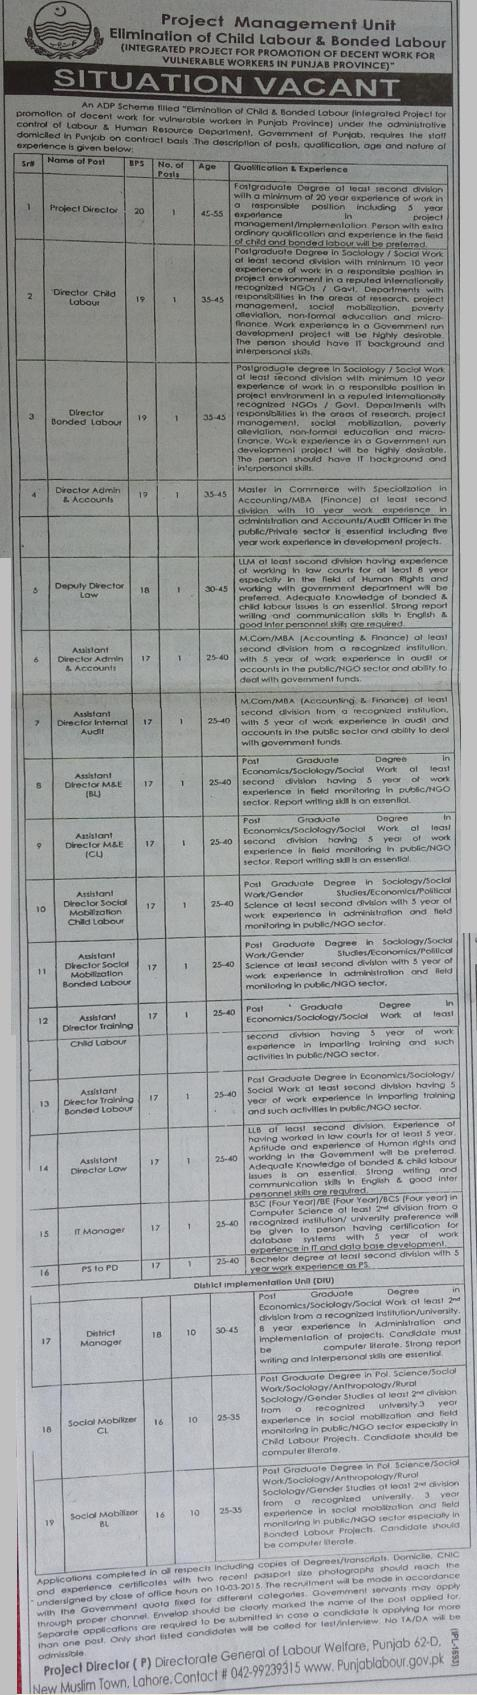 Vacancies in PMU Elimination of Child Labour and Bonded Labour in Punjab Province